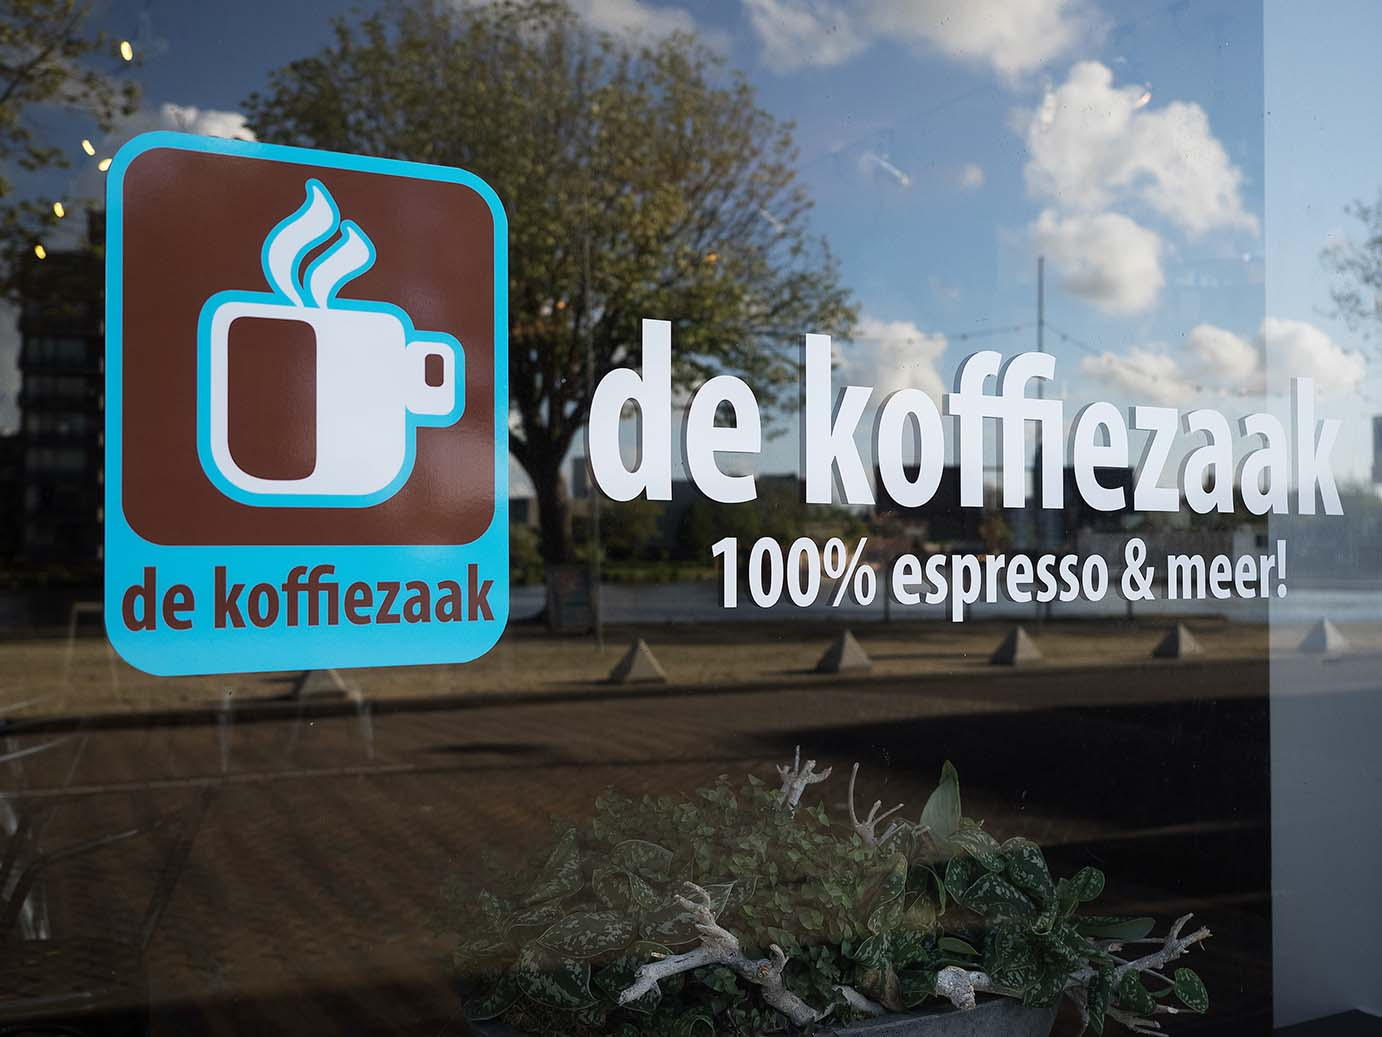 de Koffiezaak in de Zaanbocht